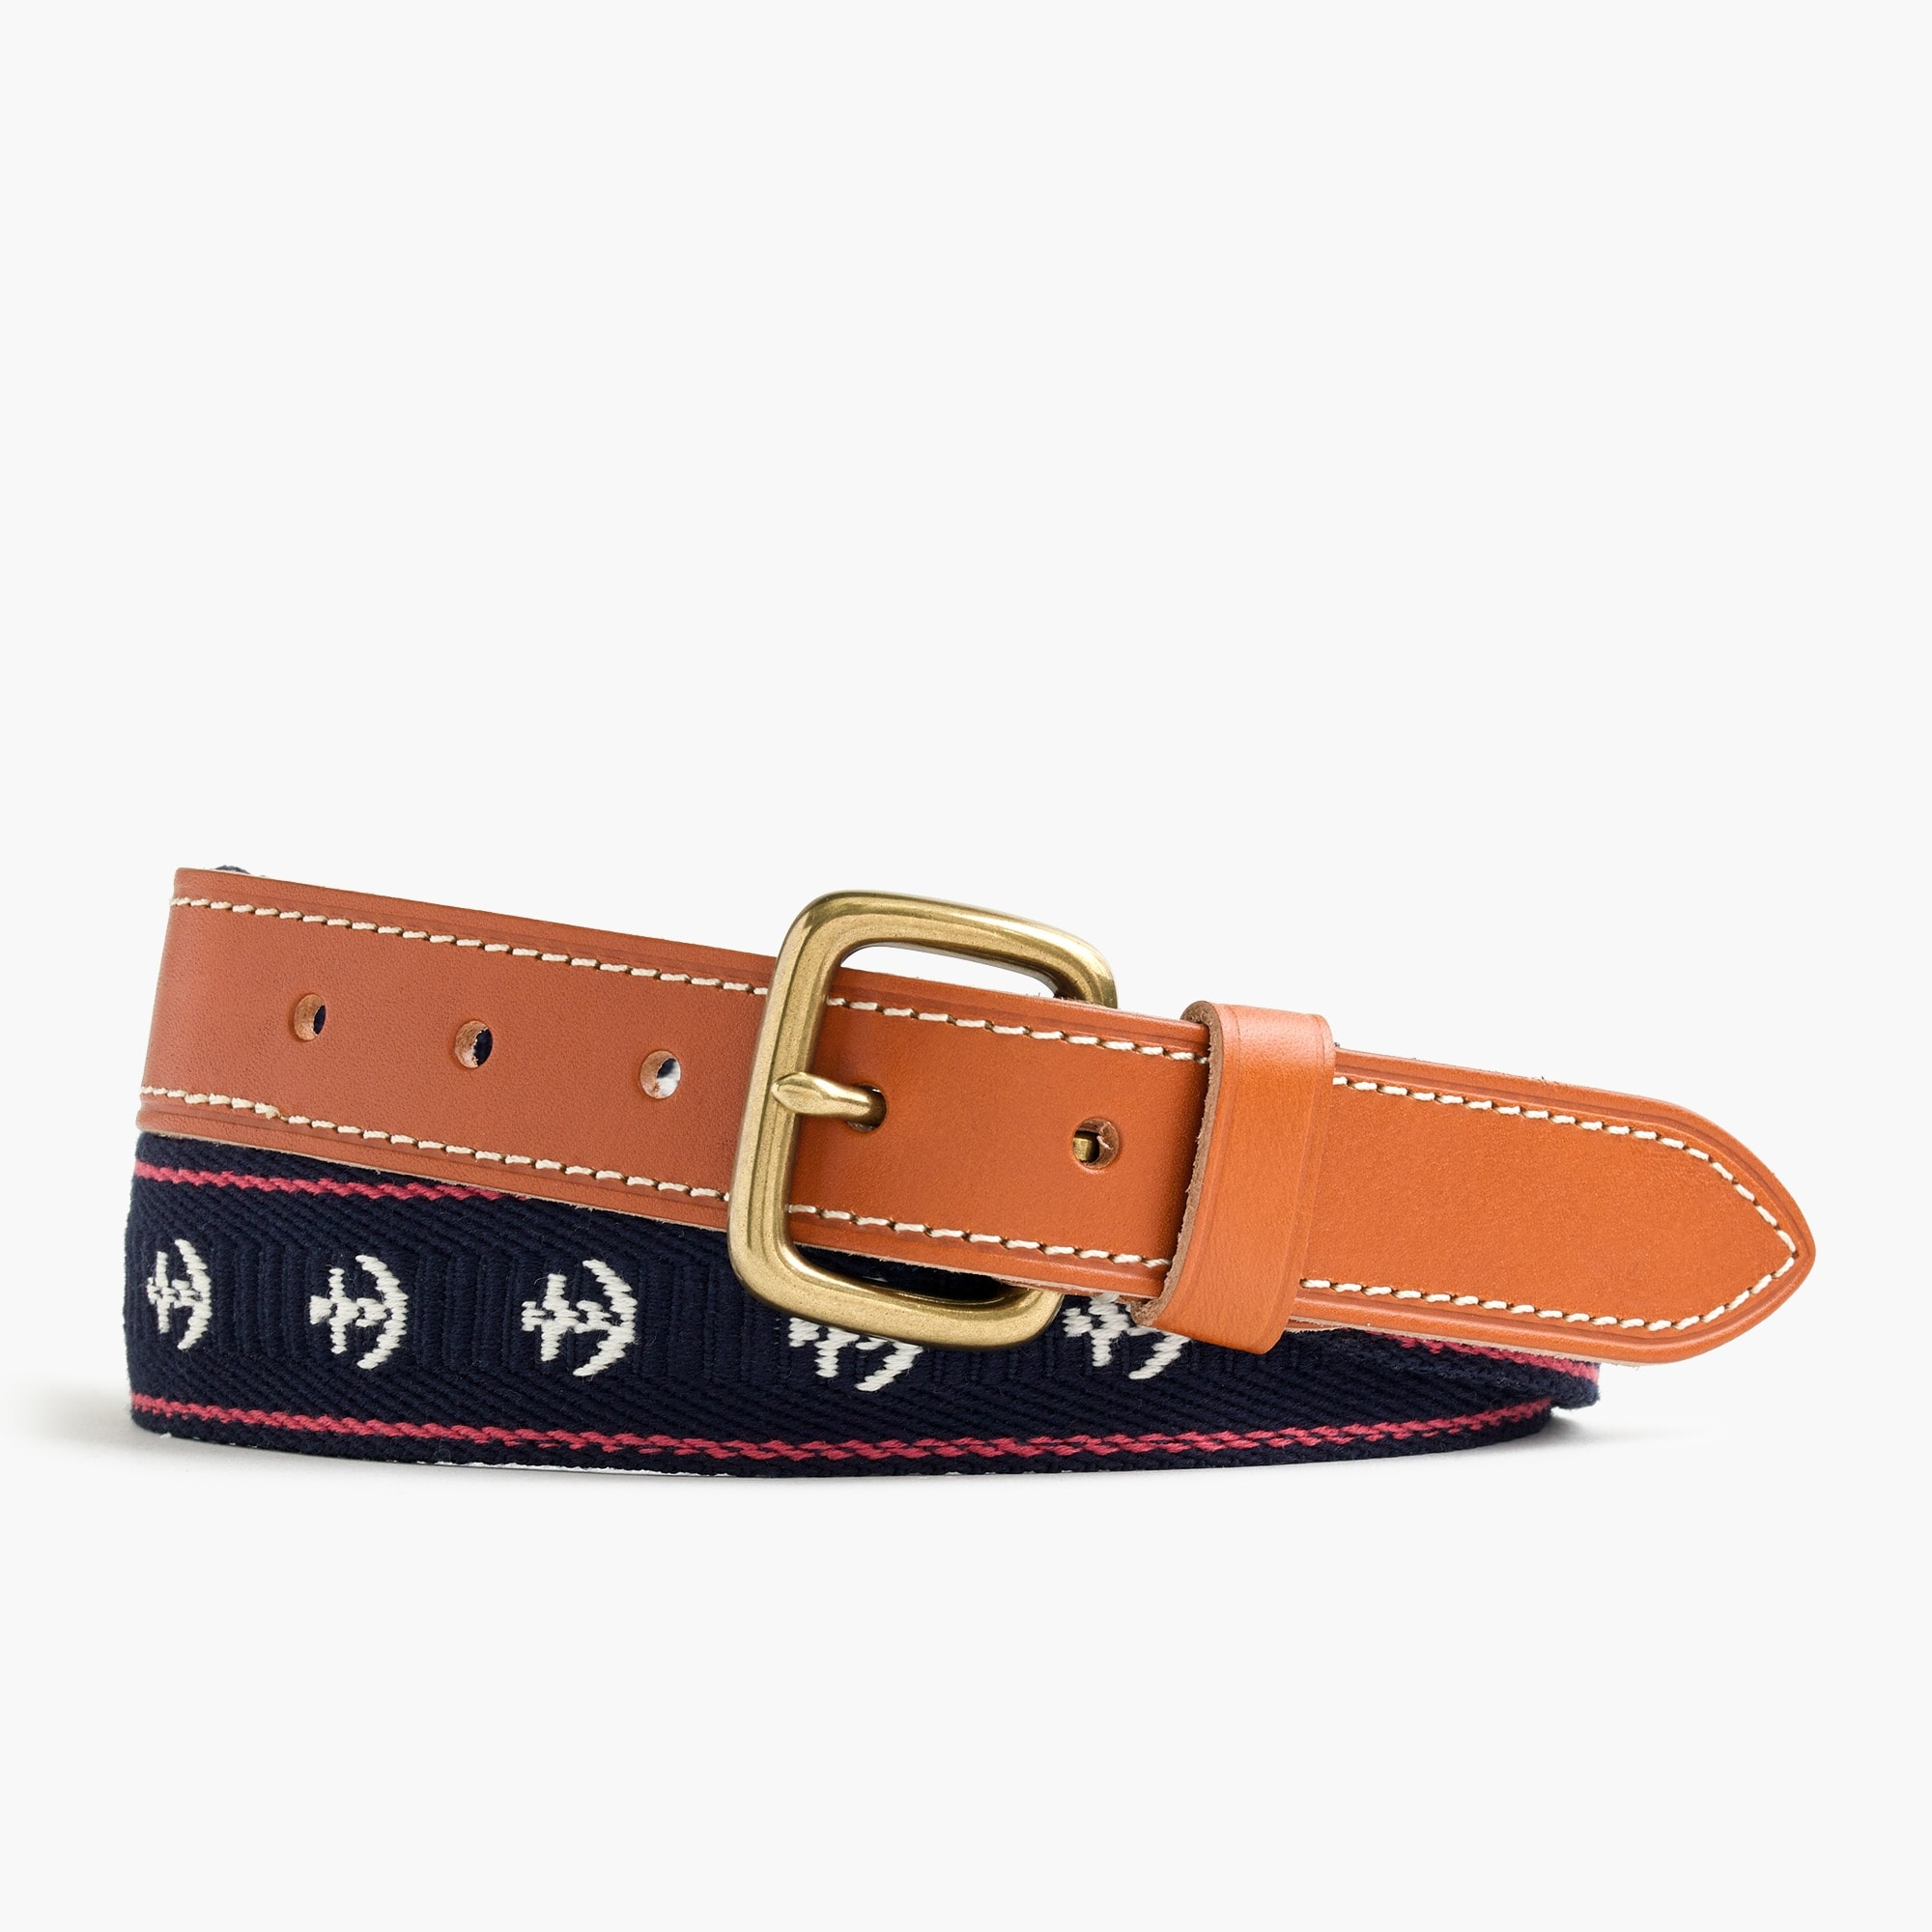 mens Leather belt with anchor embroidery